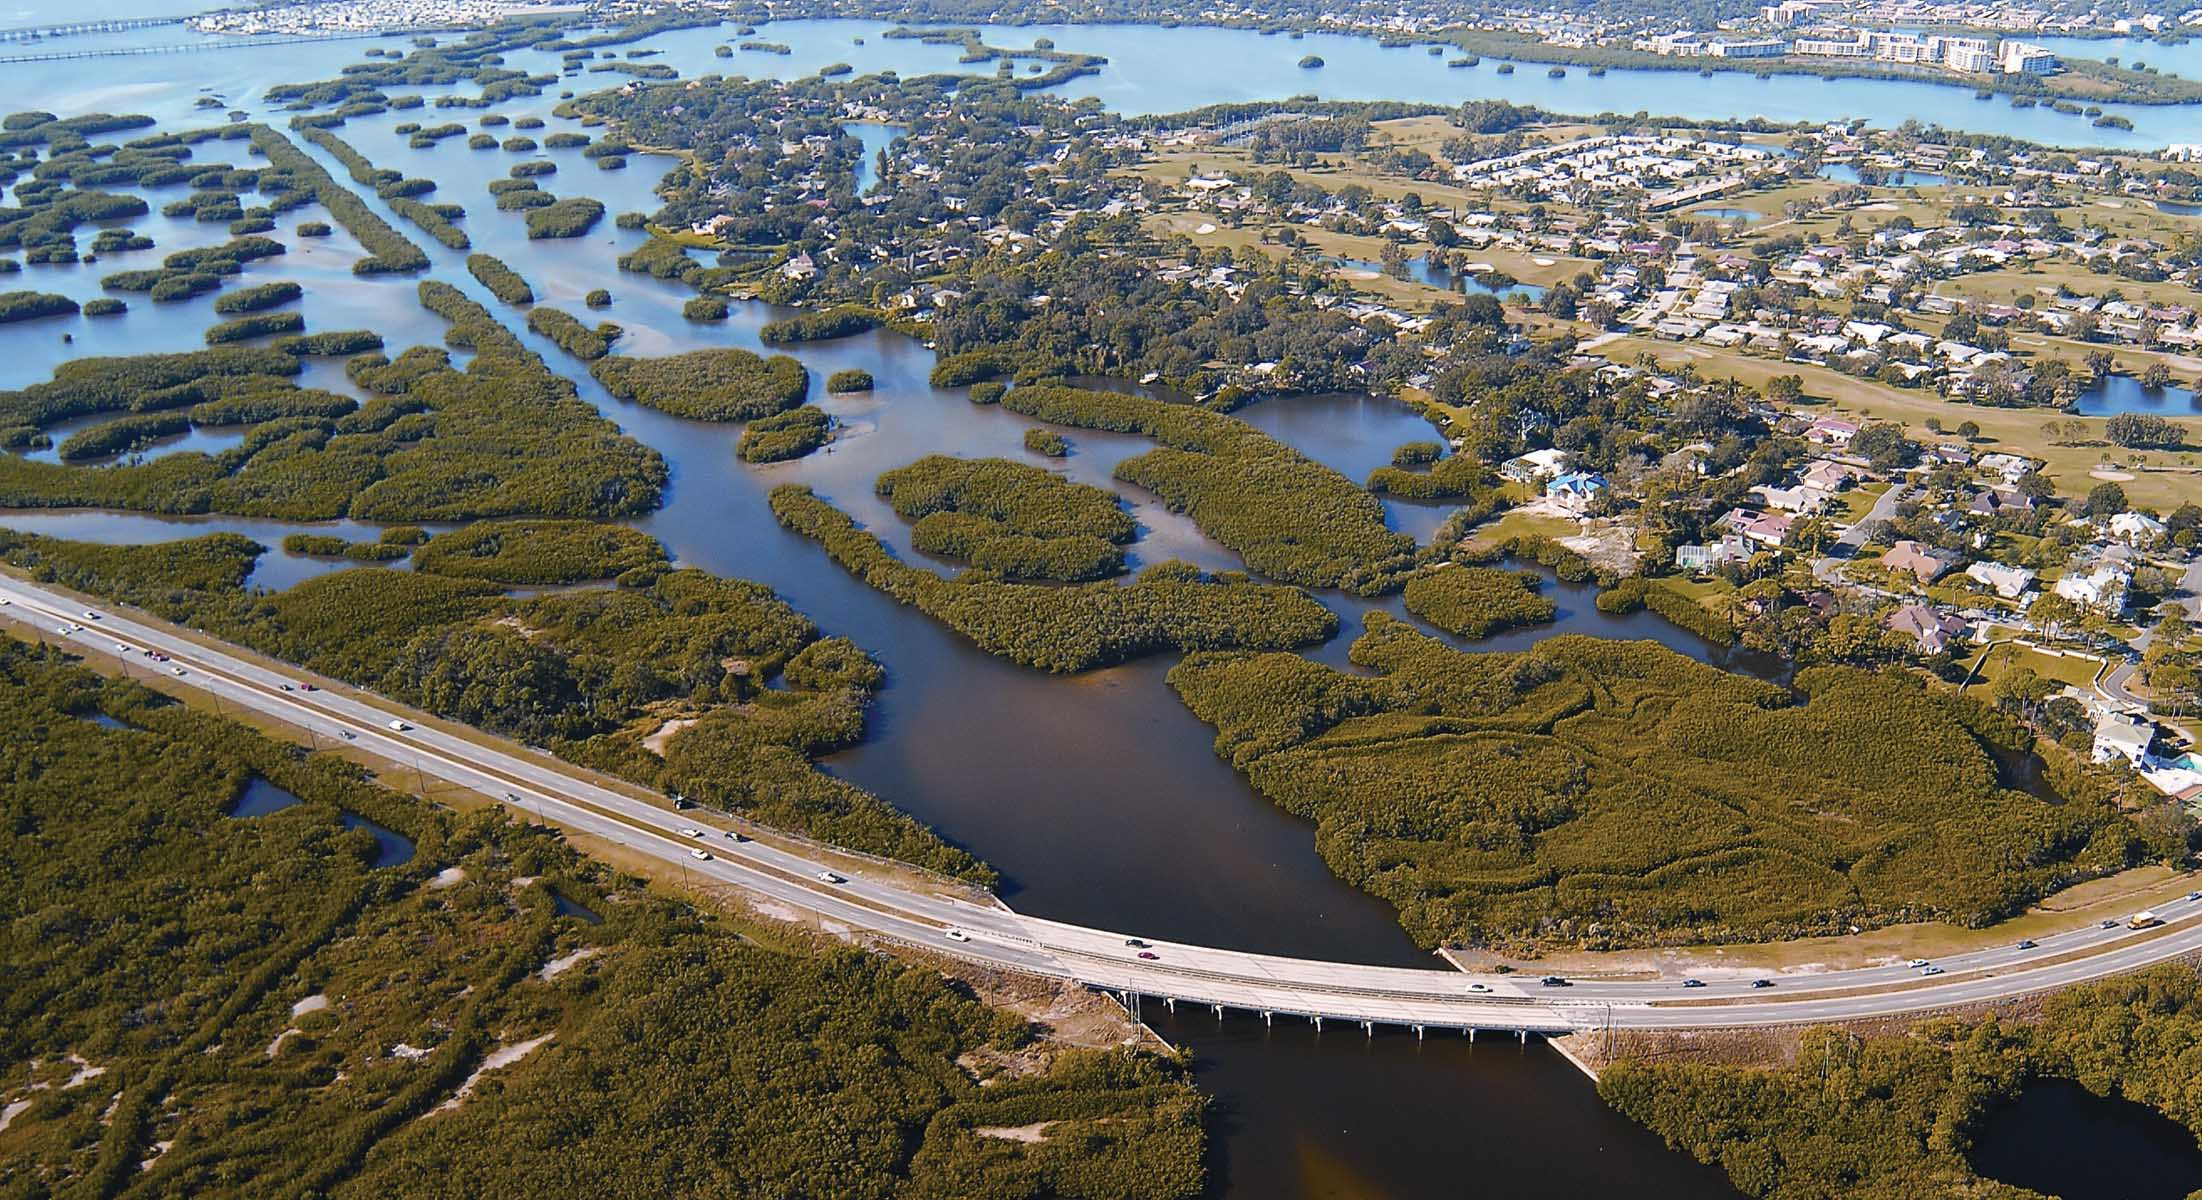 Natural 'green barriers' help protect this Florida coastline and infrastructure from severe storms and floods. (Credit: NOAA).